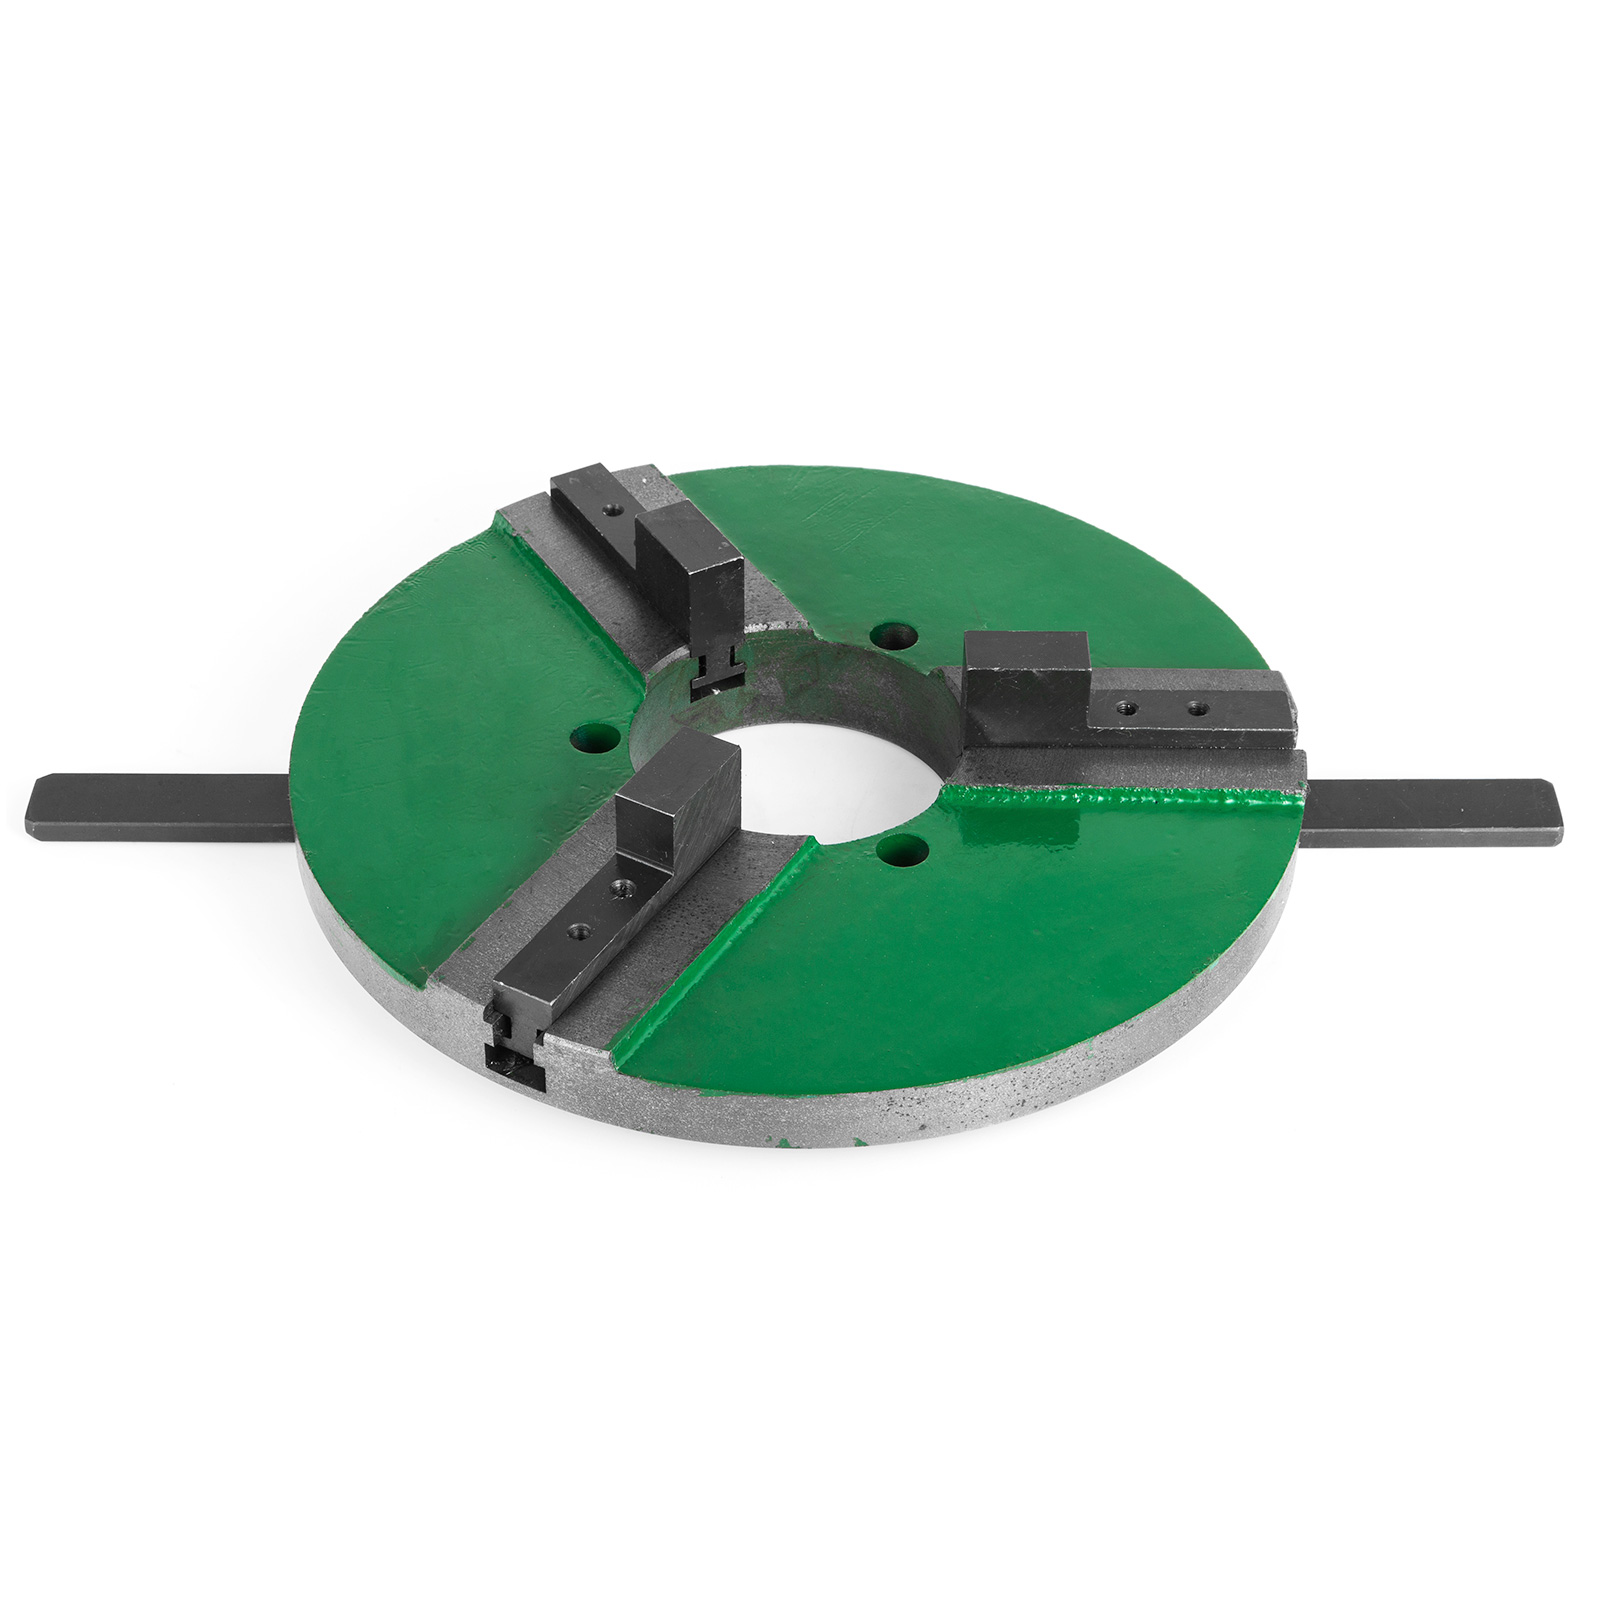 3-Jaw-Table-Chuck-Reversible-WP-200-WP-300-Clamping-Self-Centering-Welding thumbnail 27